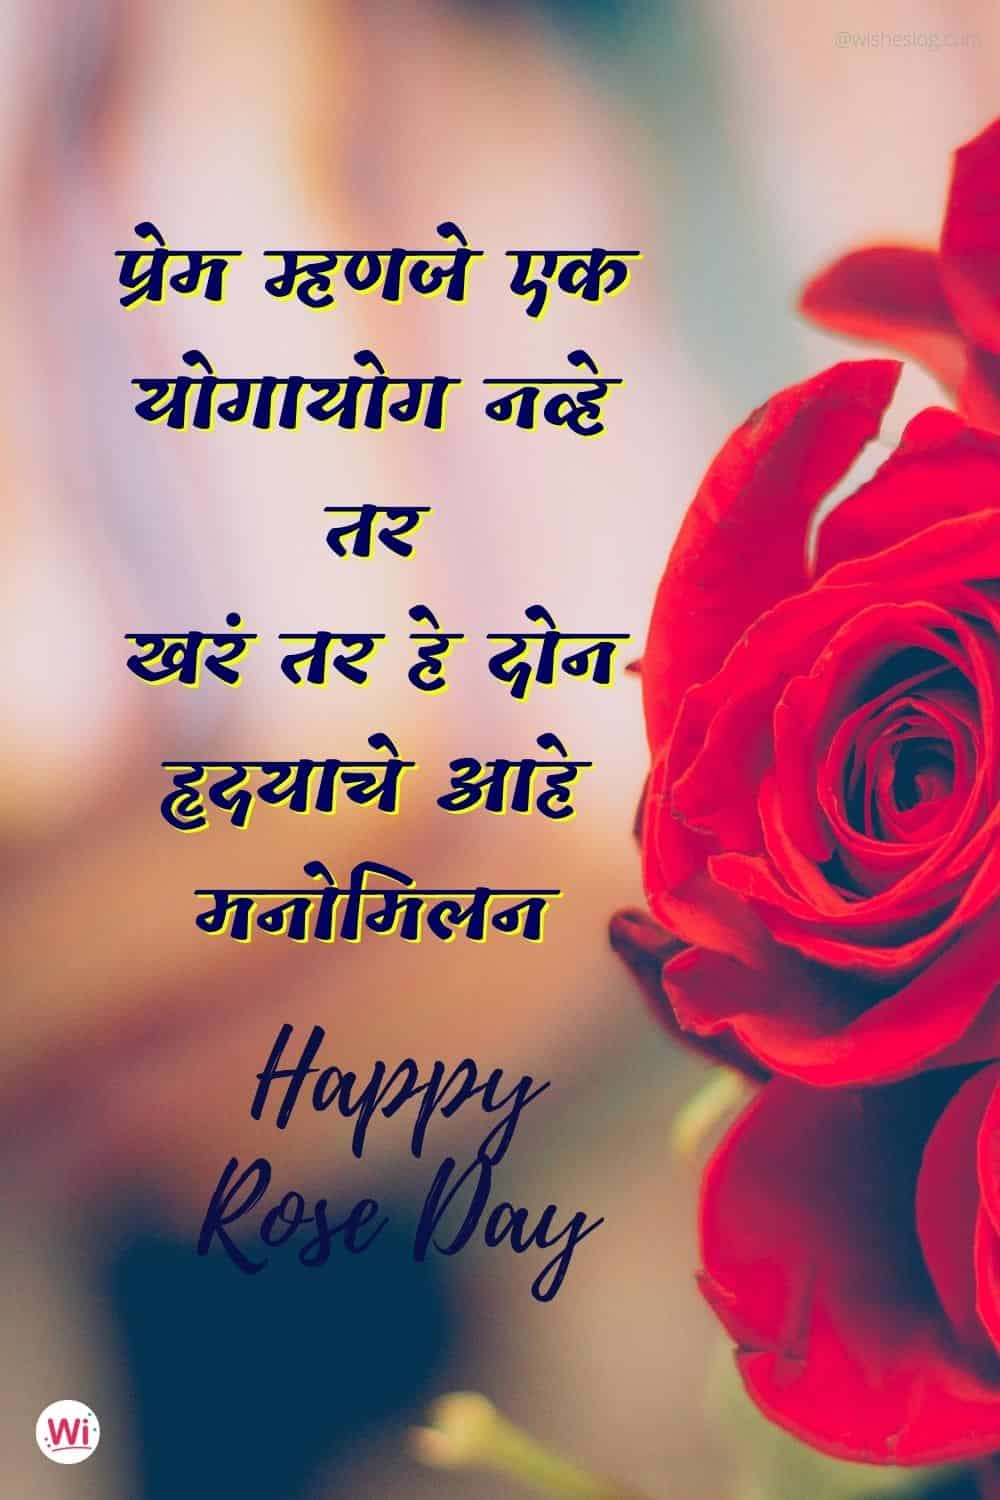 happy rose day messages in marathi